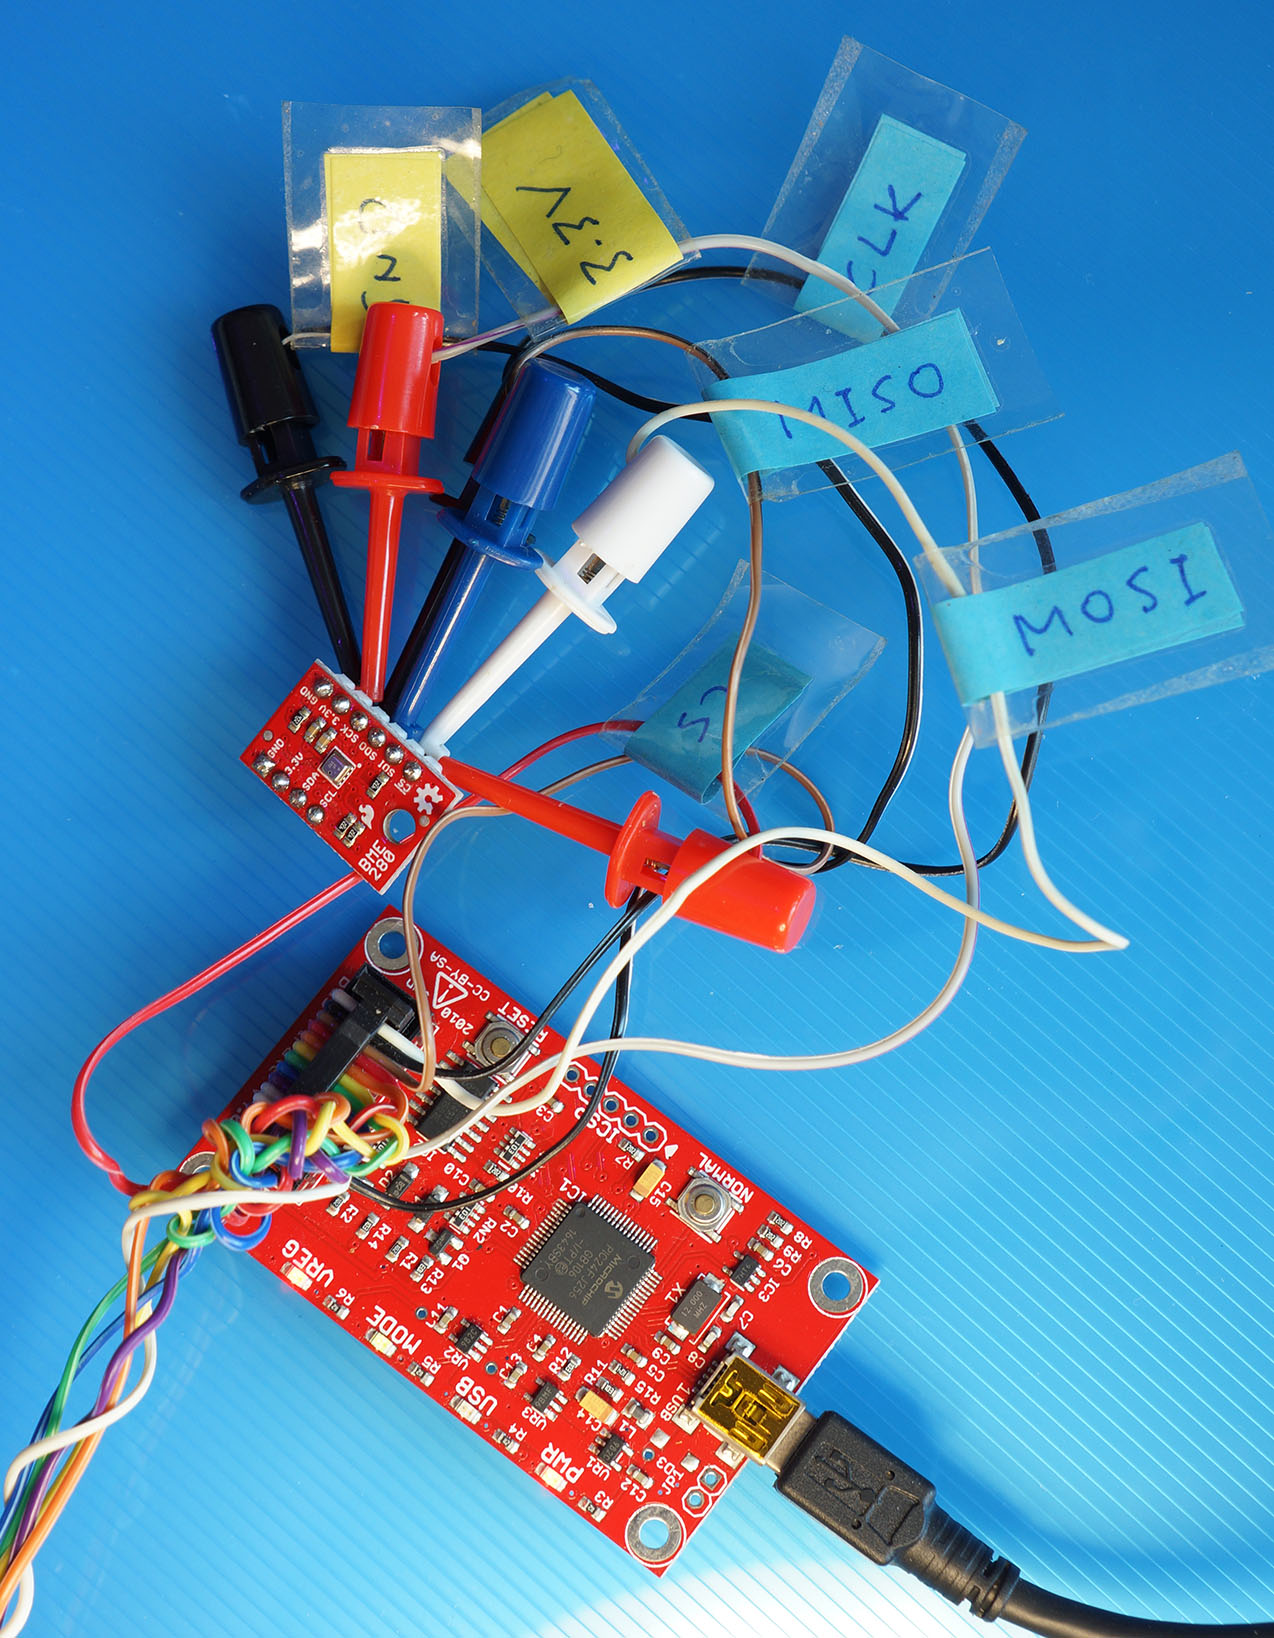 Bus Pirate connected to BME280 Sensor over SPI